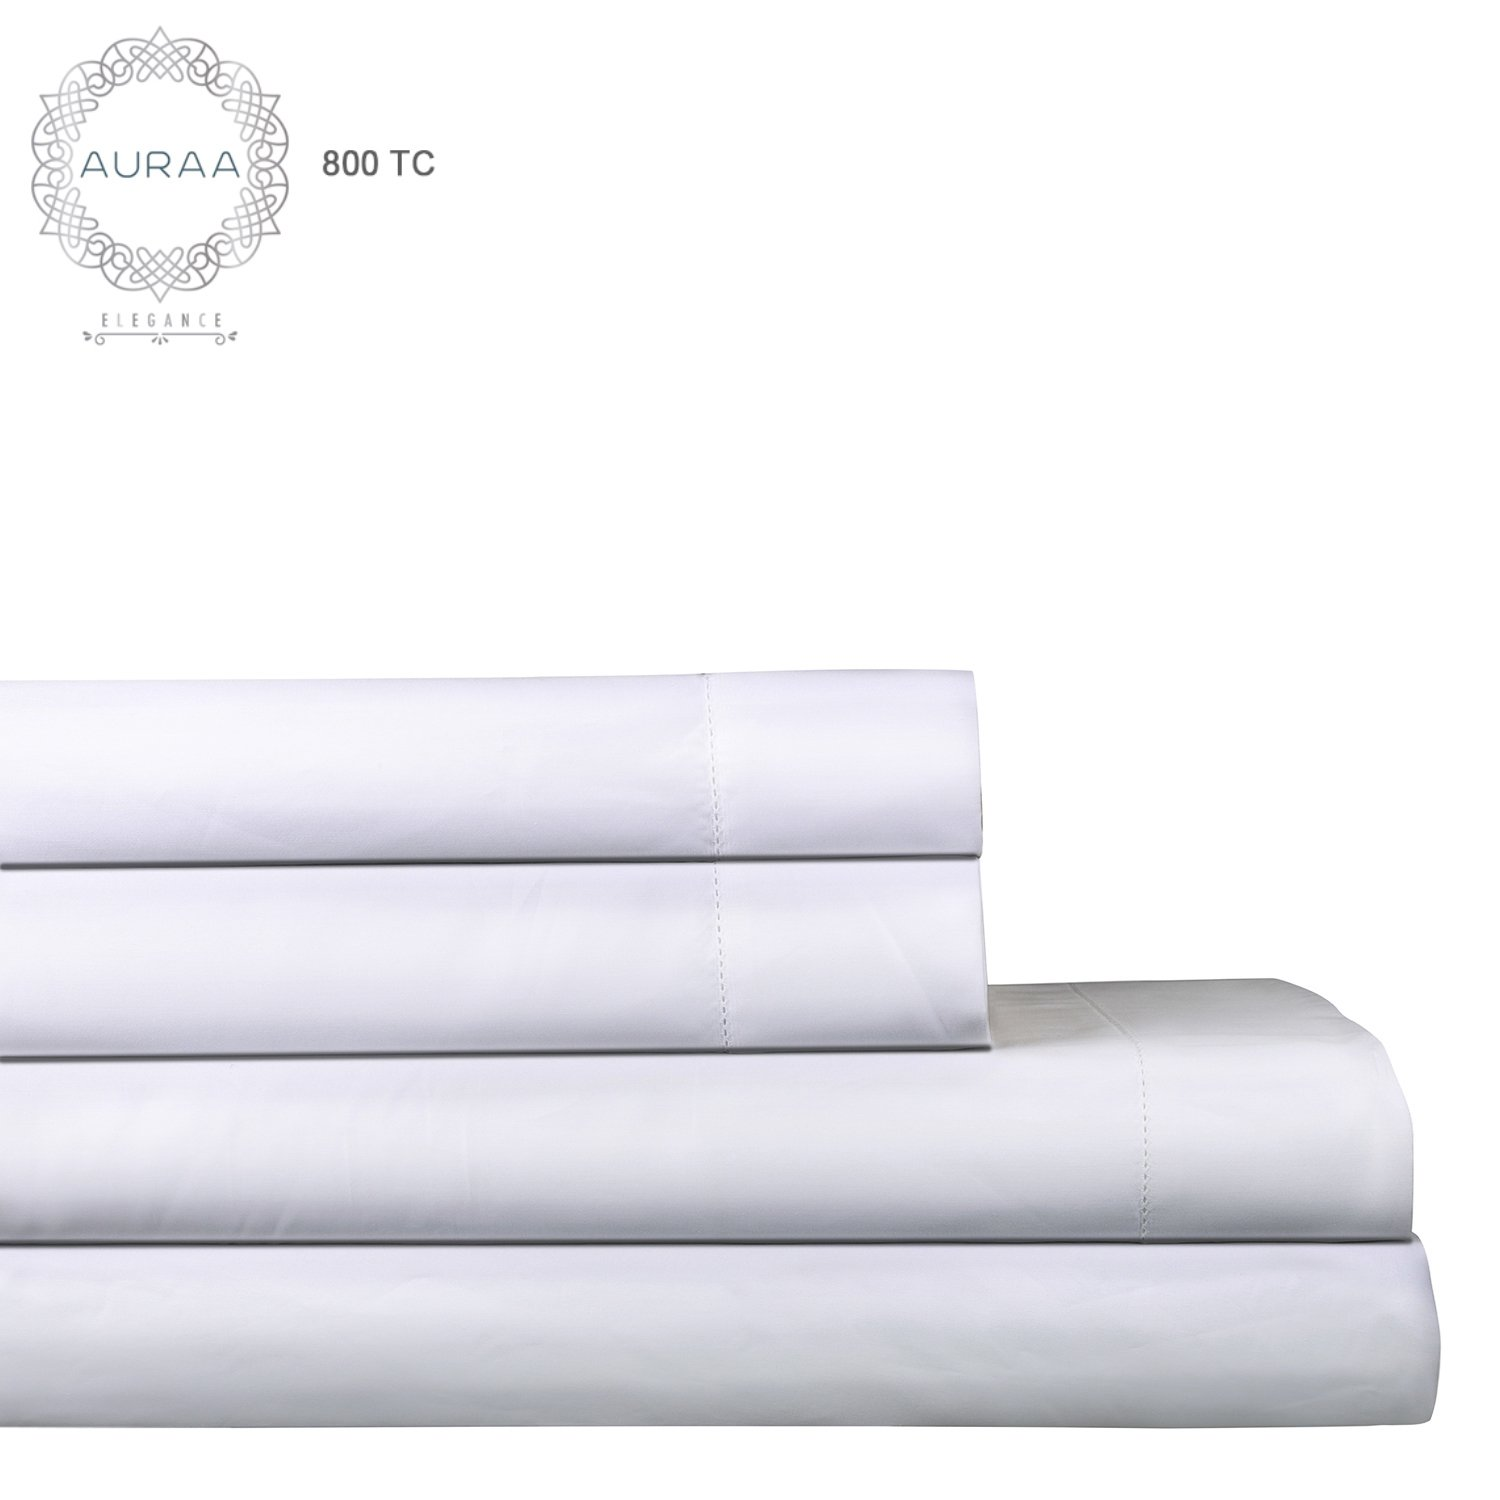 AURAA Elegance 800 Thread Count 100% American Supima Long Staple Cotton Sheet Set,4 Pc Set, Queen Sheets Sateen Weave,Hotel Collection Soft Luxury Bedding,Fits Upto 18'' Deep Pocket,White